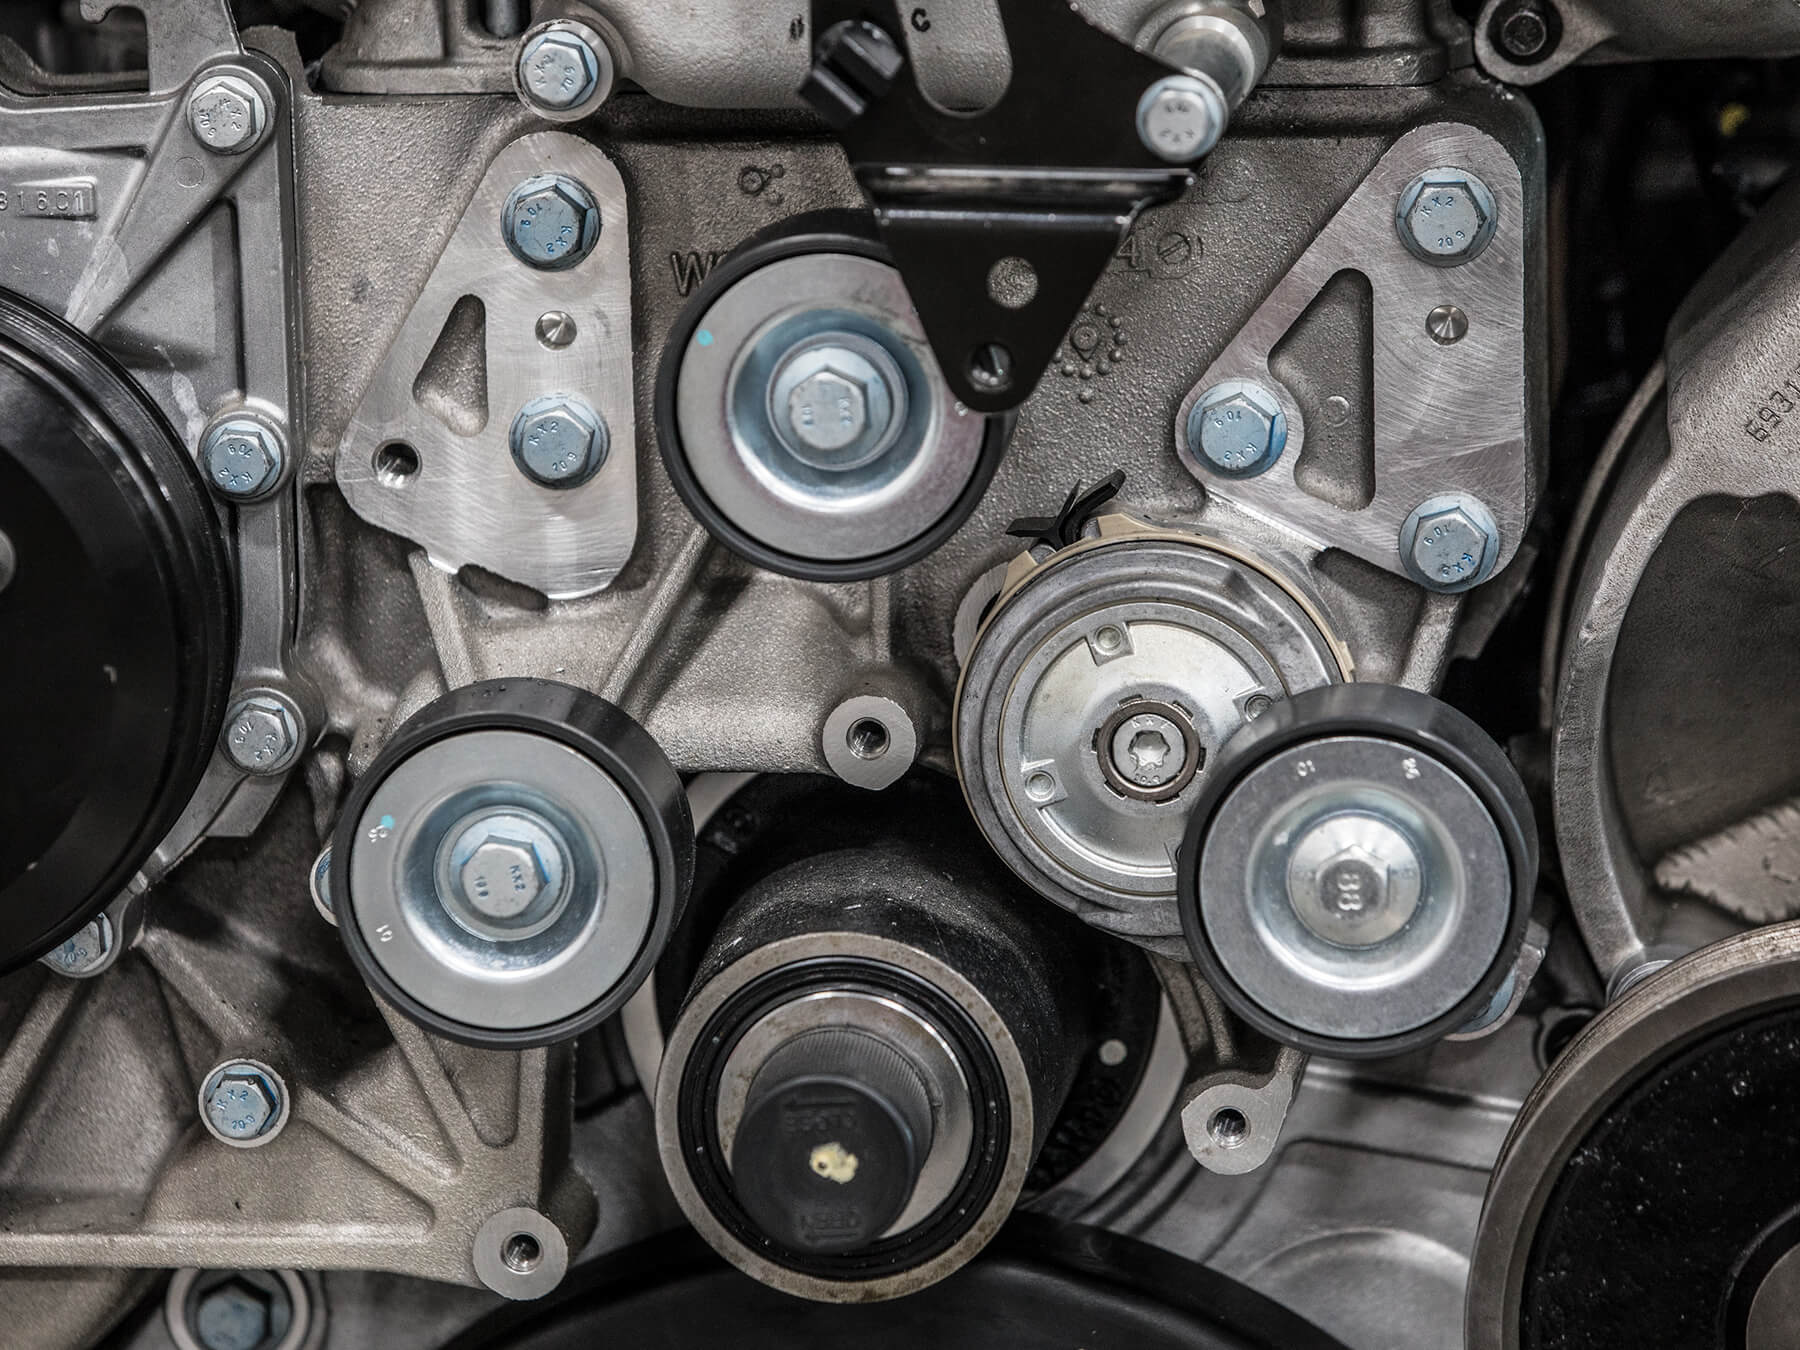 Close up photo of an engine